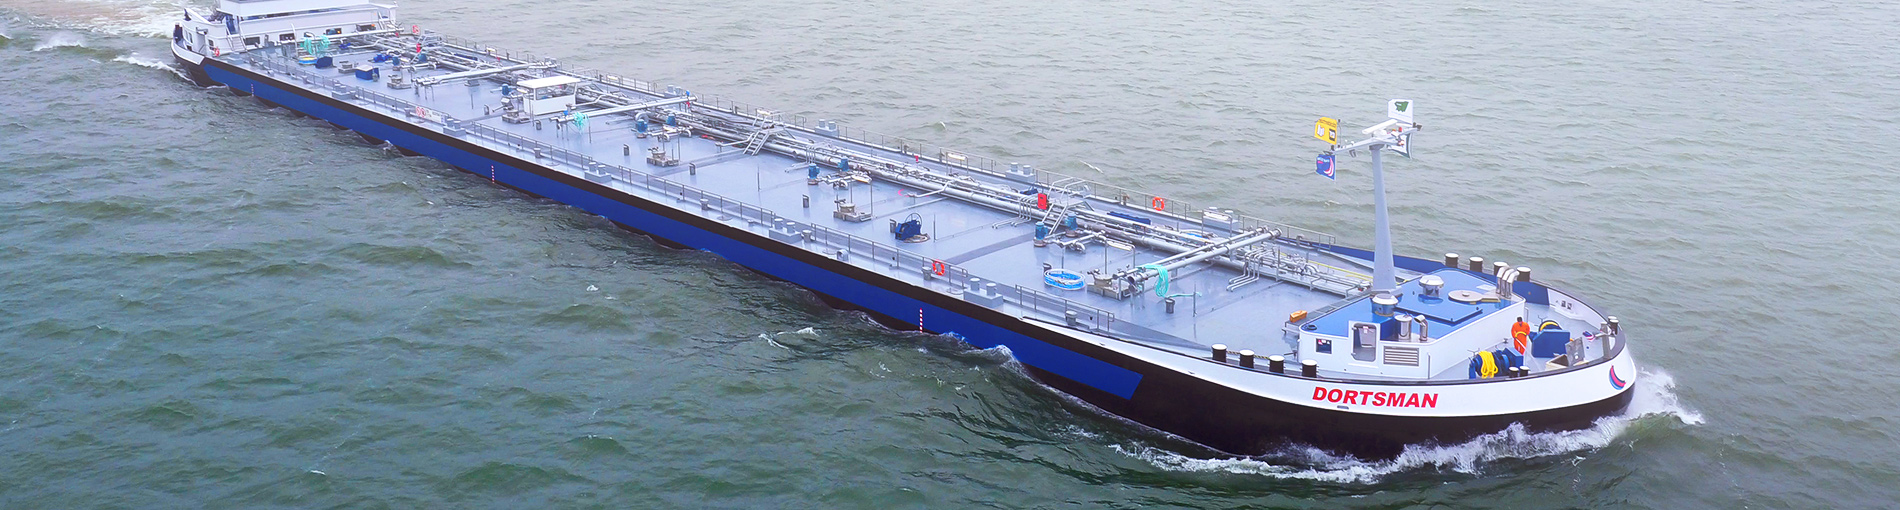 mts dortsman van loon shipping